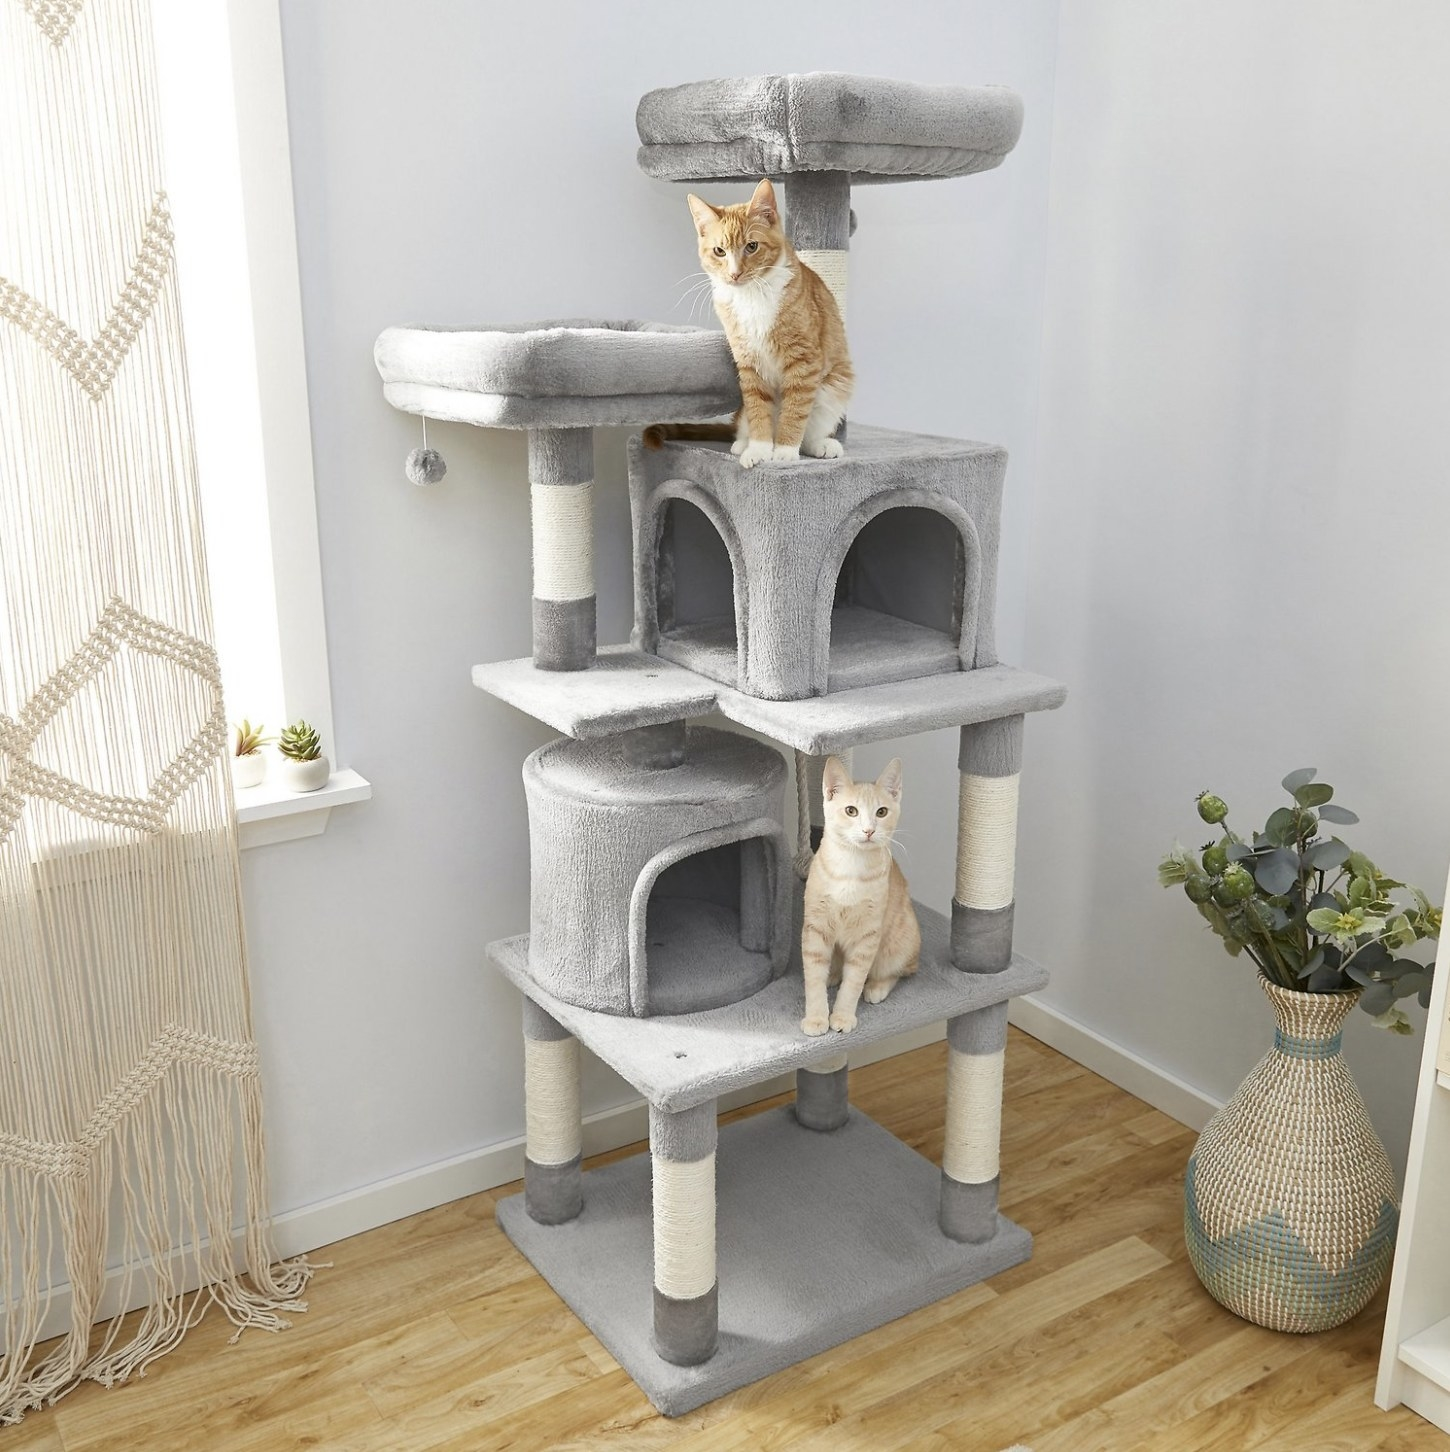 Two cats sitting on a cat tree condo